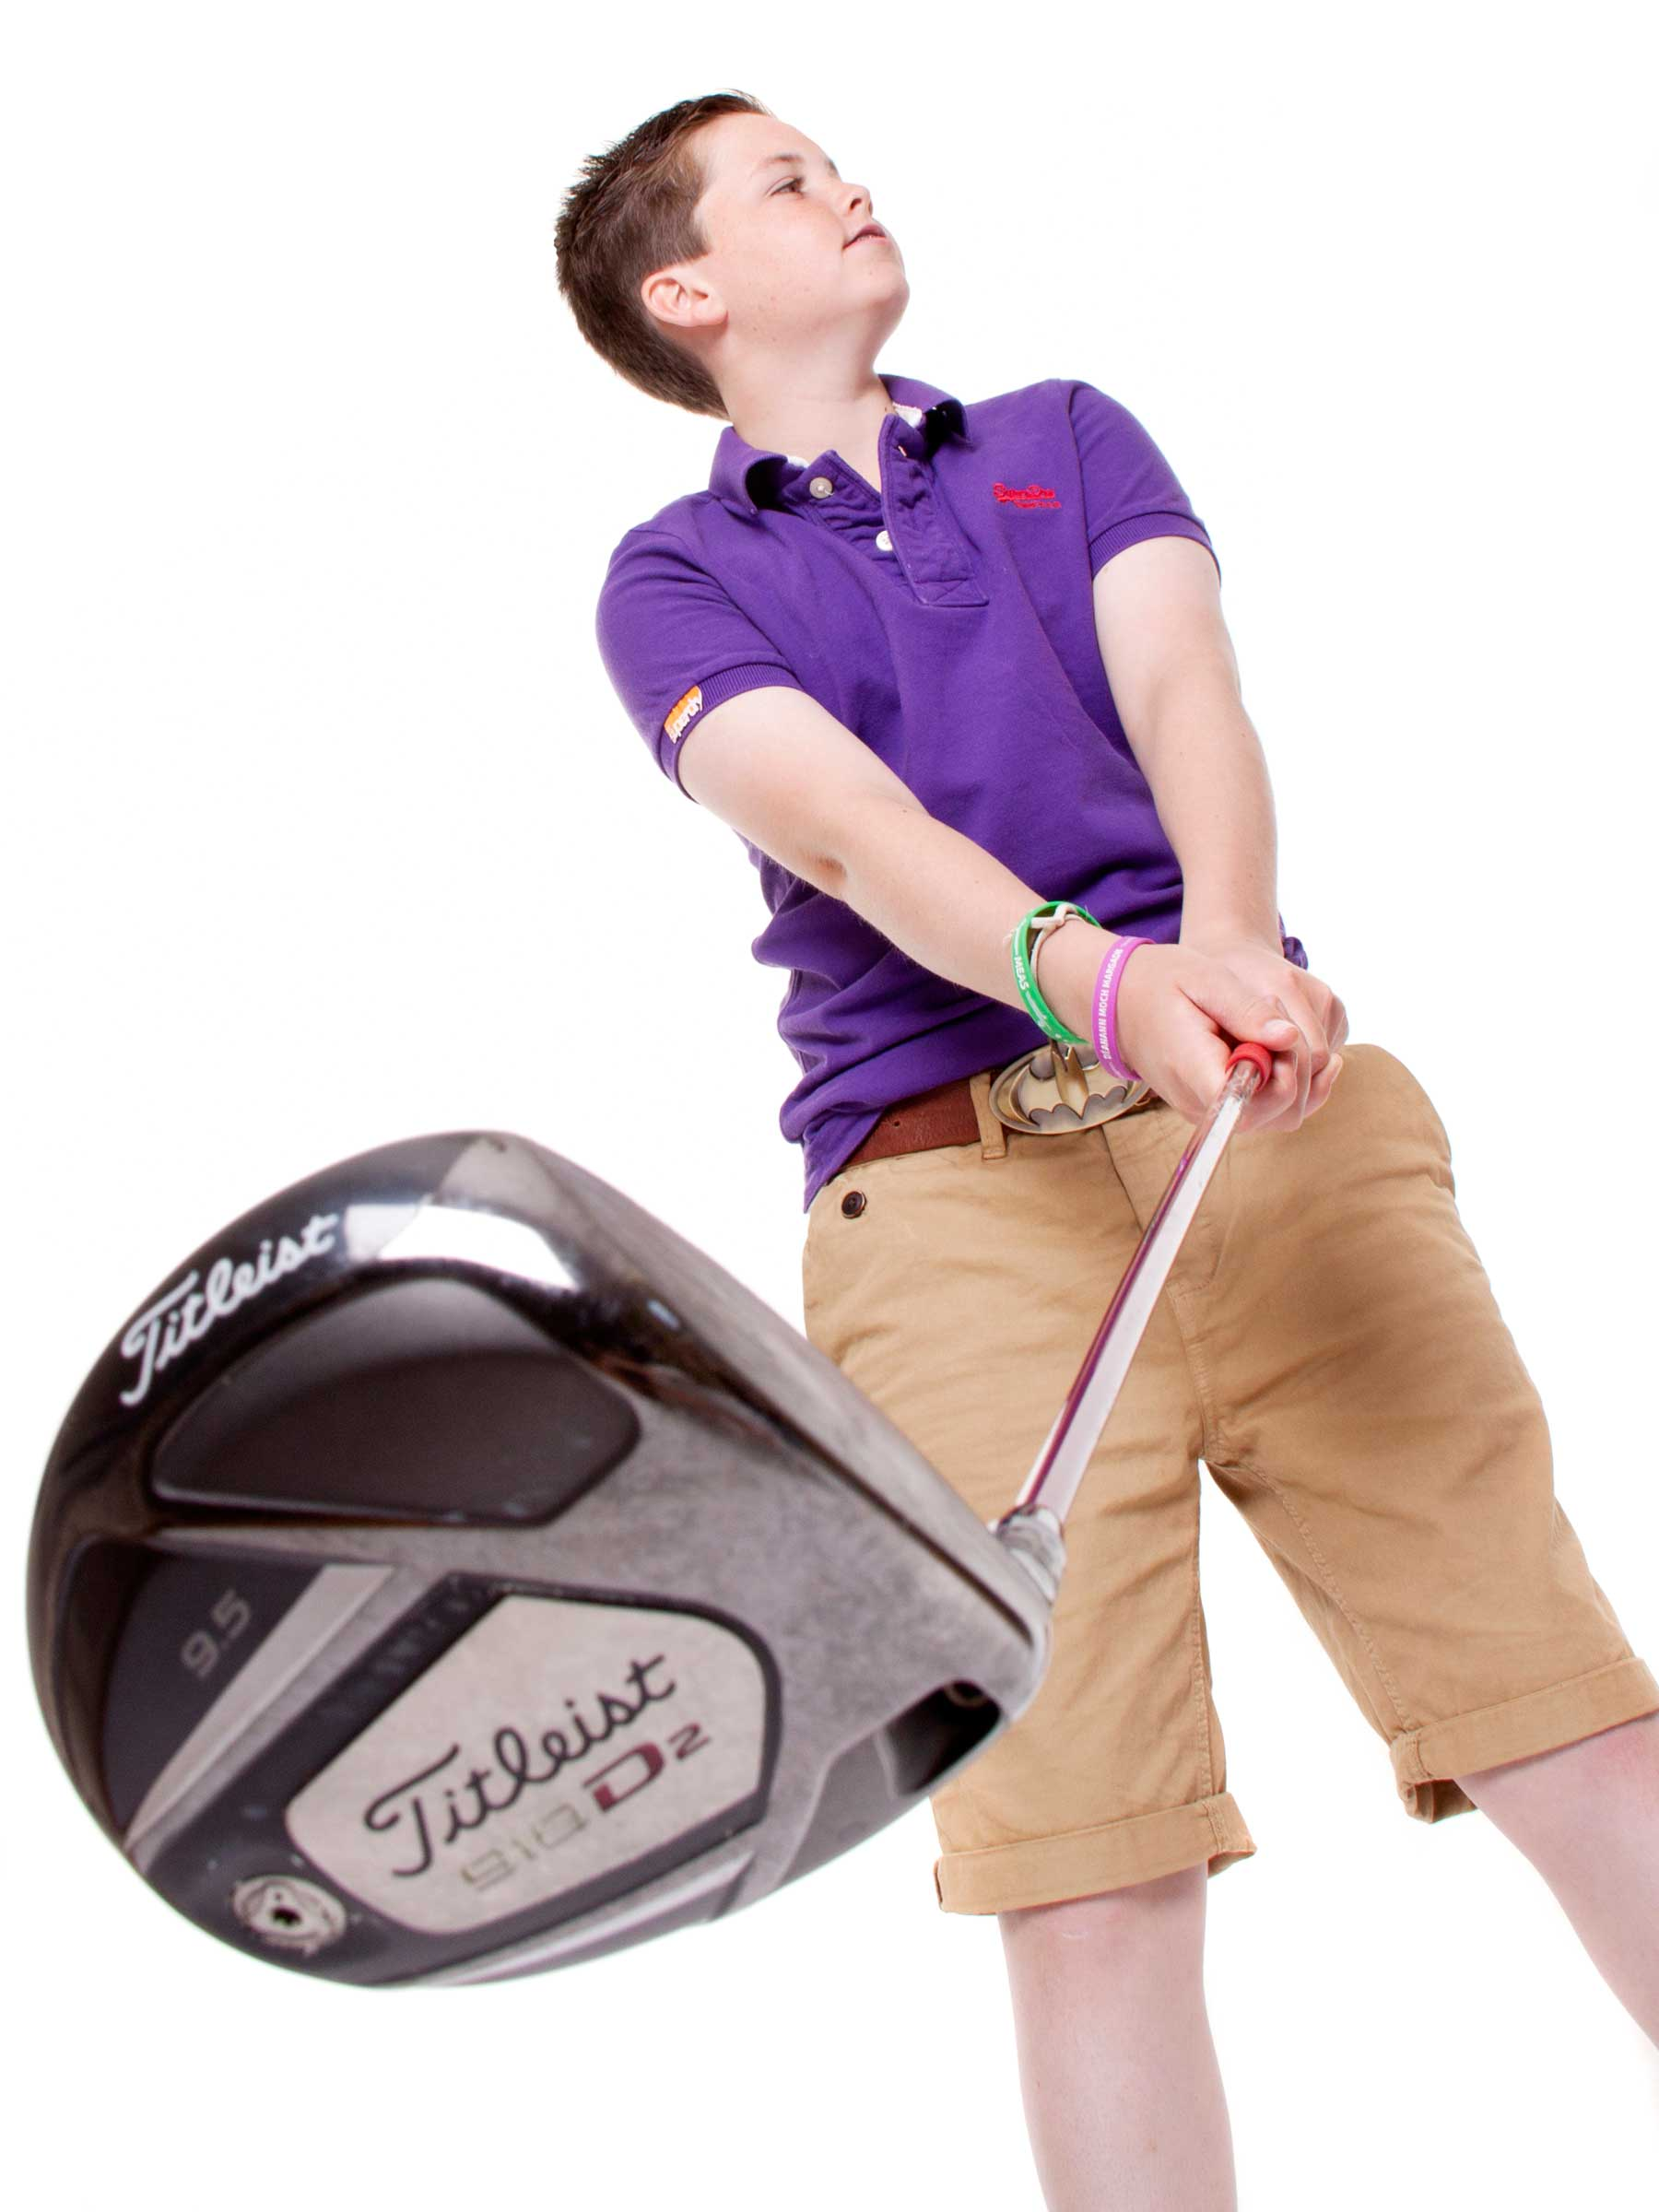 15A-Home-Shoot-Boy-Golf-Club-Philip-Murray-Photography-Dublin